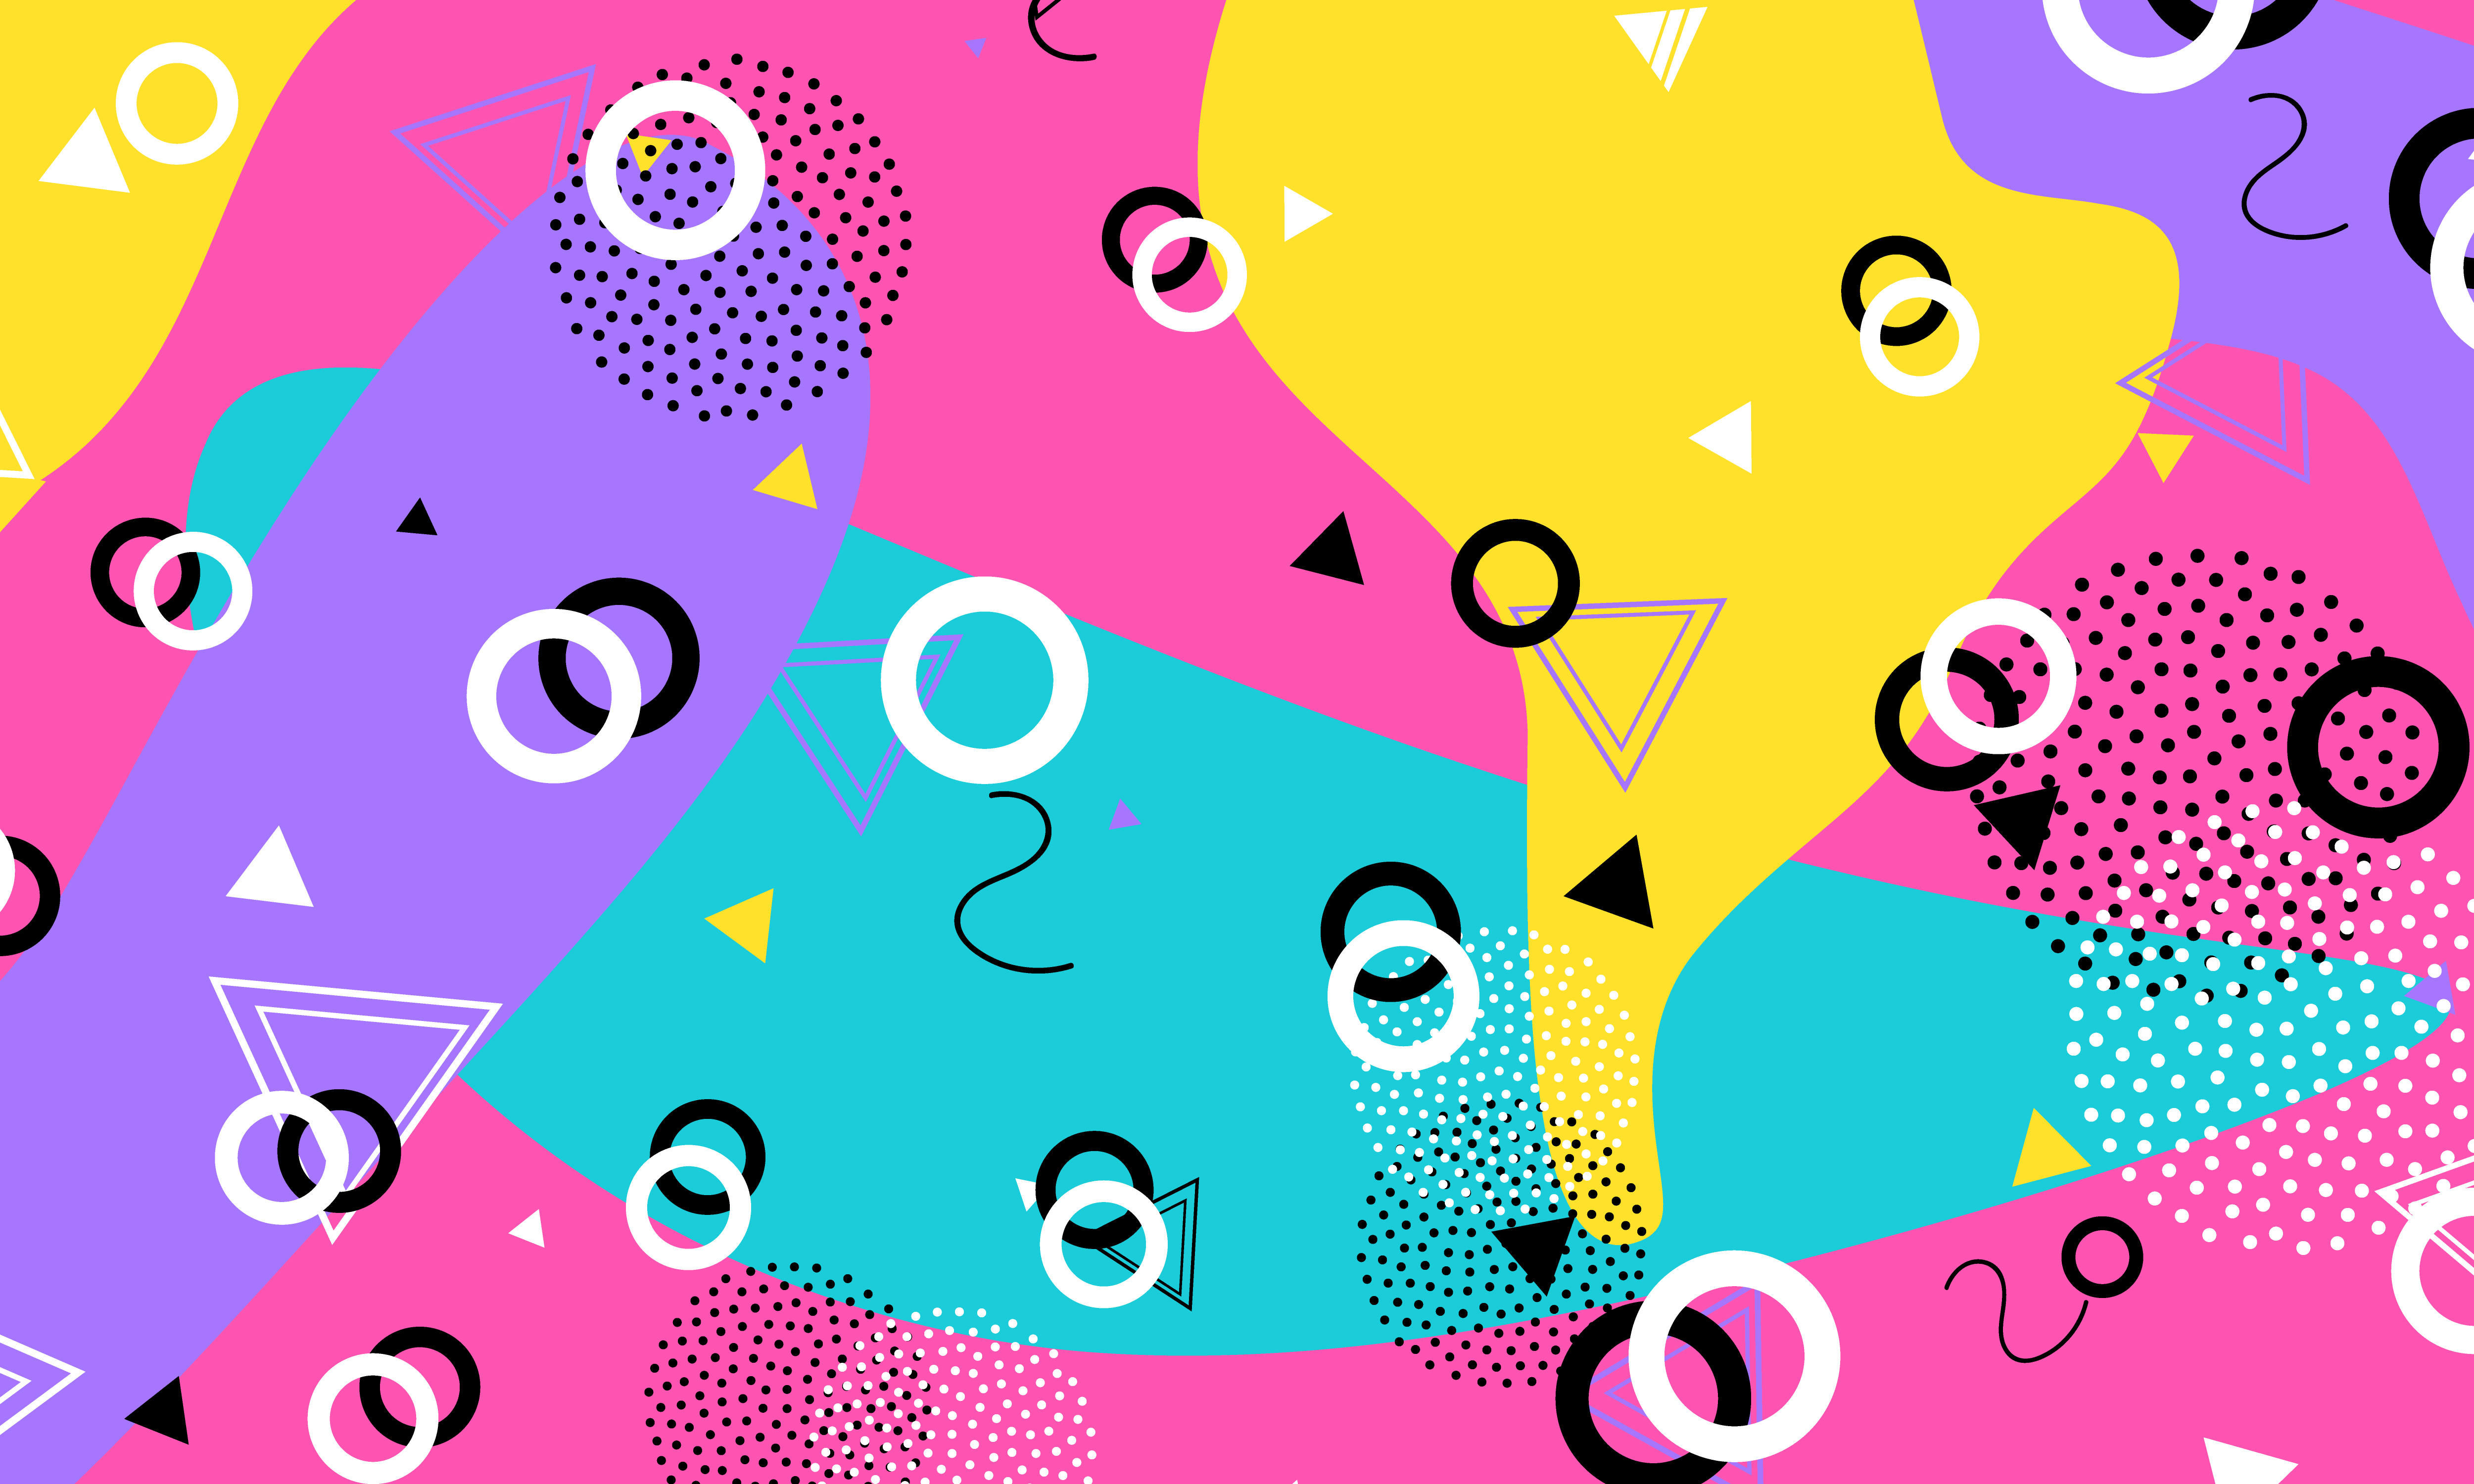 Abstract retro background. retro. 90s pattern. Geometric shapes background. Vector Illustration. Hipster style 80s-90s.